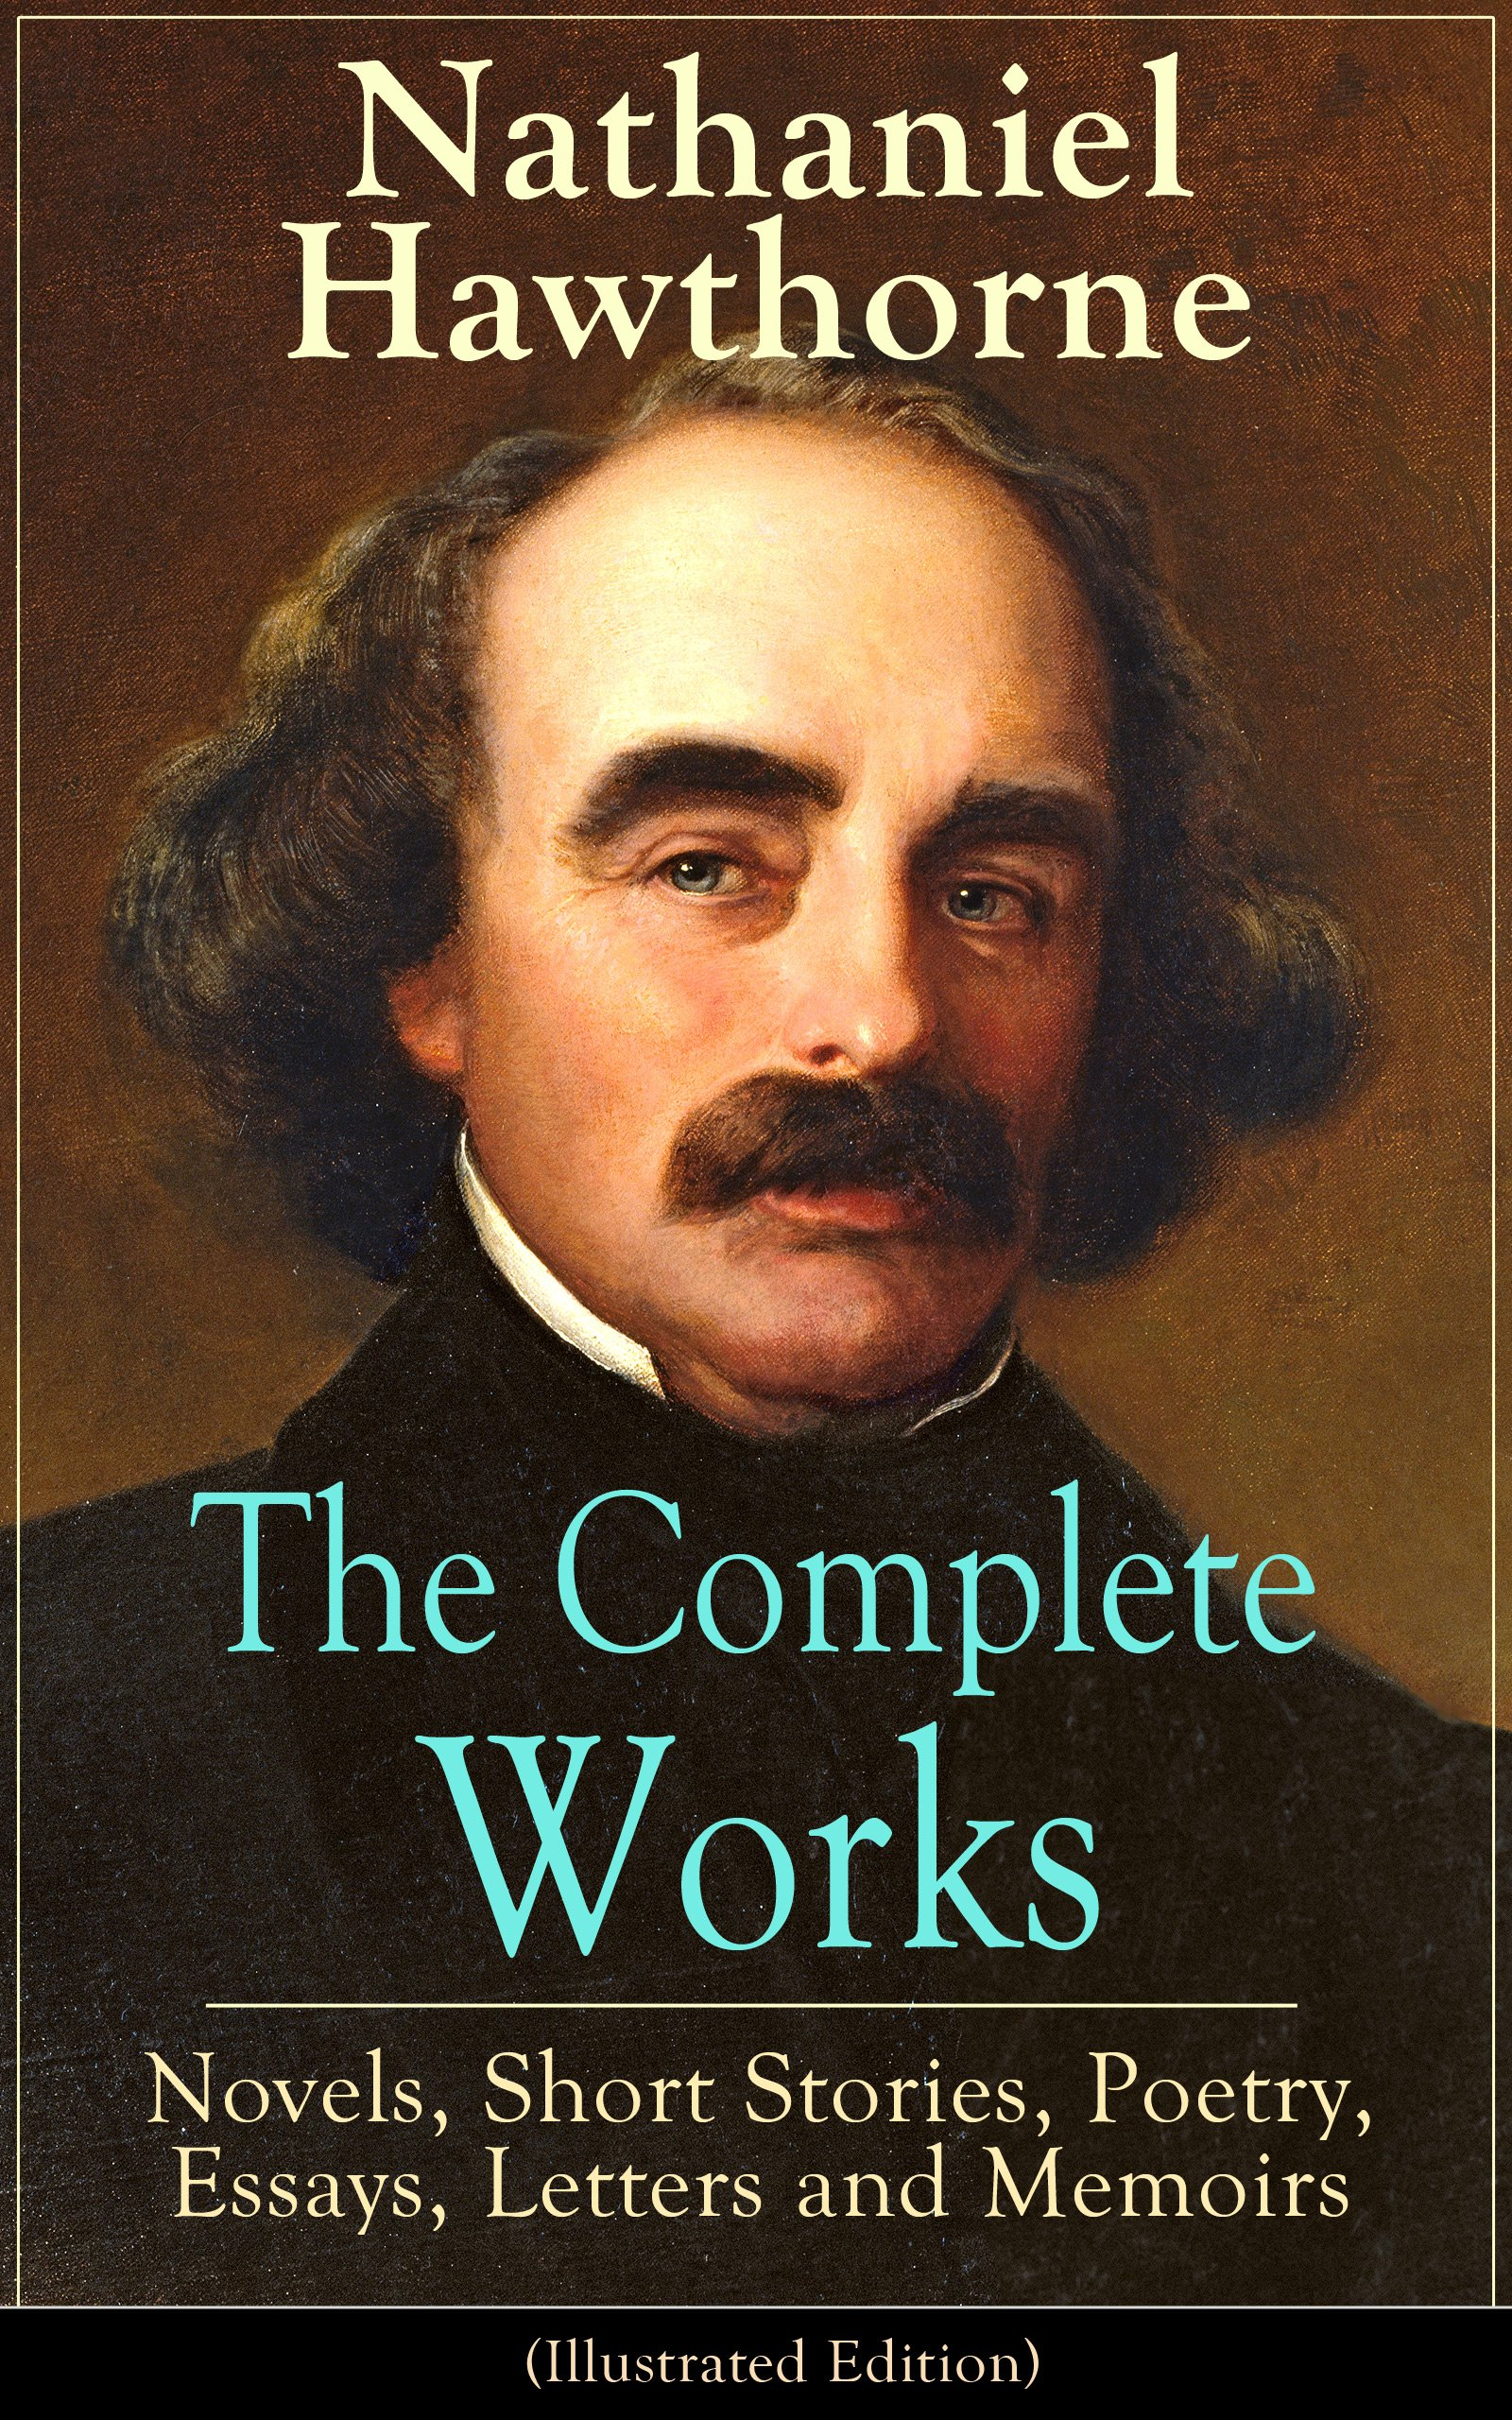 symbolism in writings of nathaniel hawthorne essay